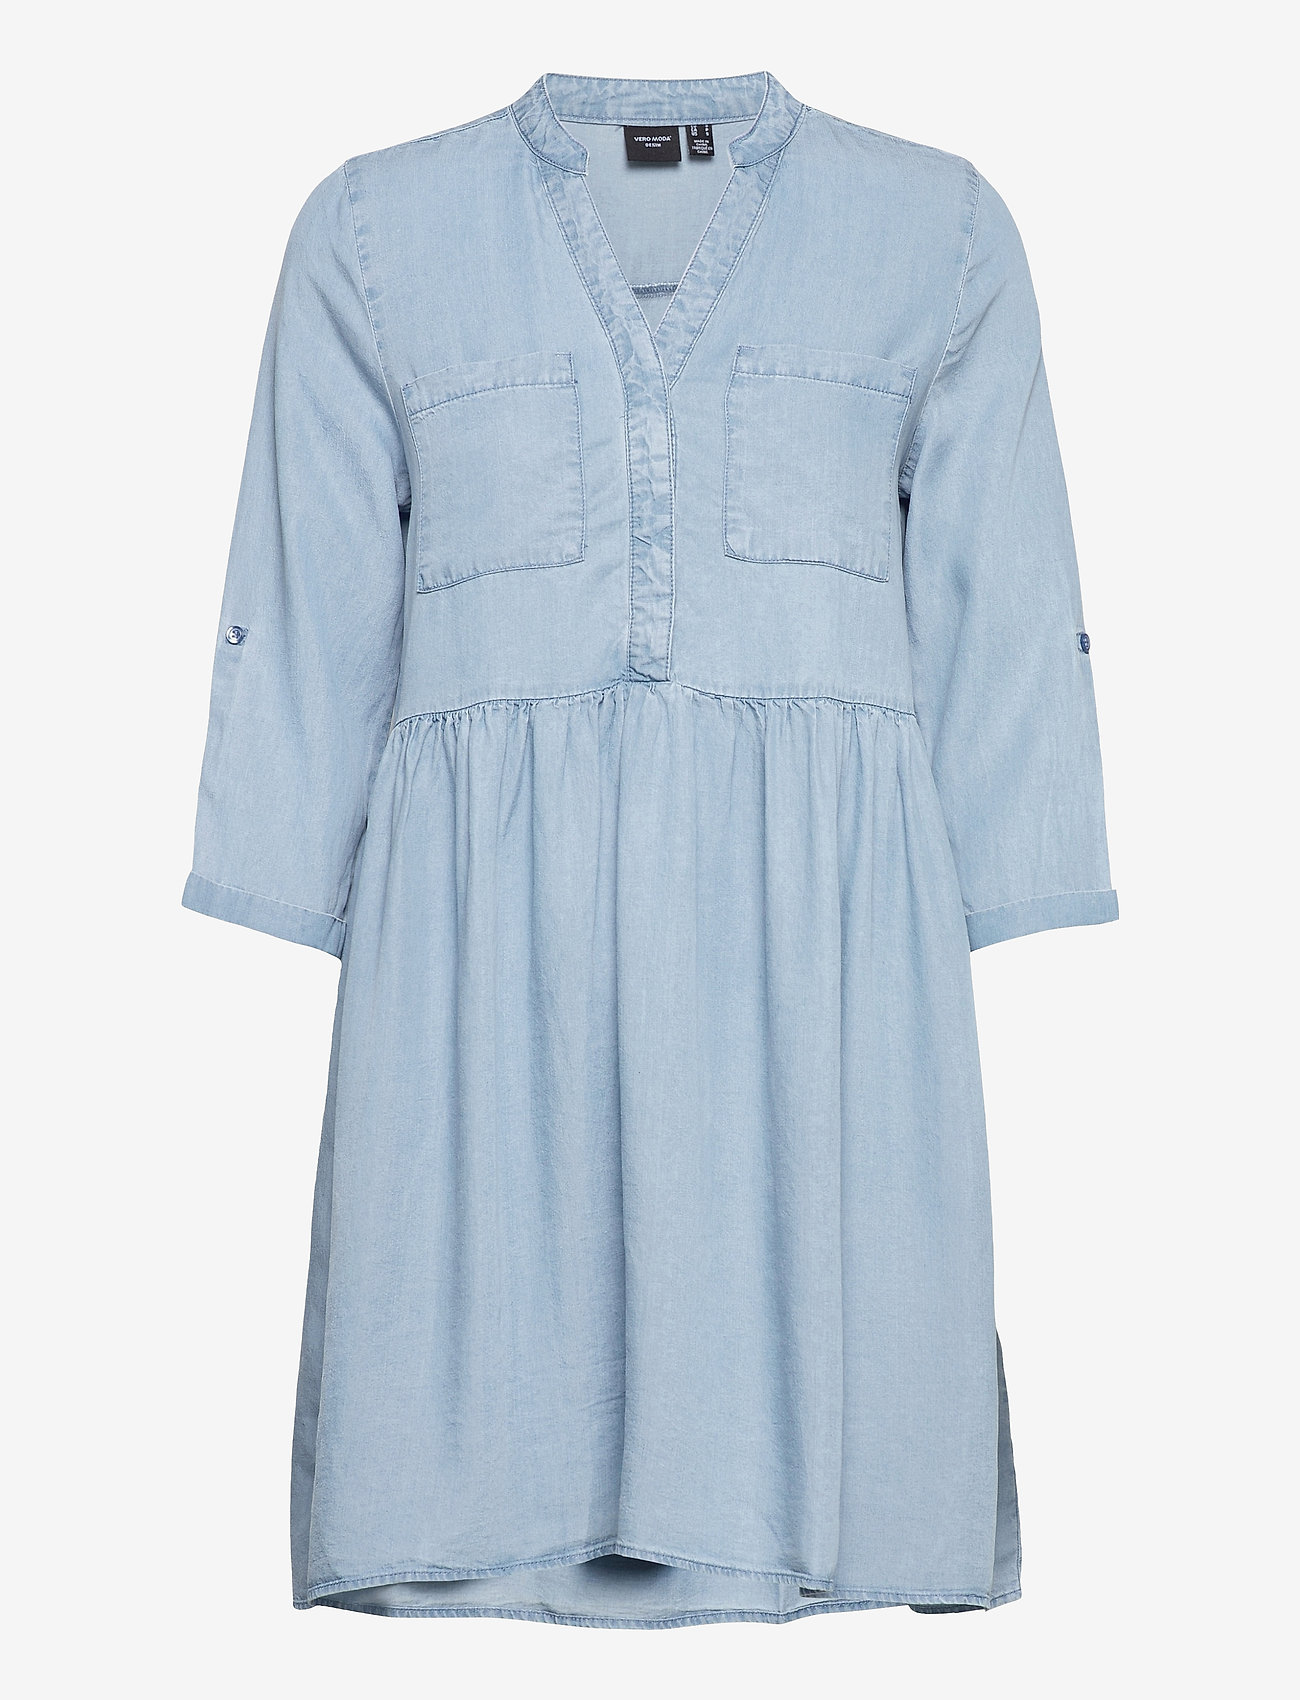 Vero Moda - VMLIBBIE 3/4 LOOSE TUNIC GA COLOR - vardagsklänningar - light blue denim - 0